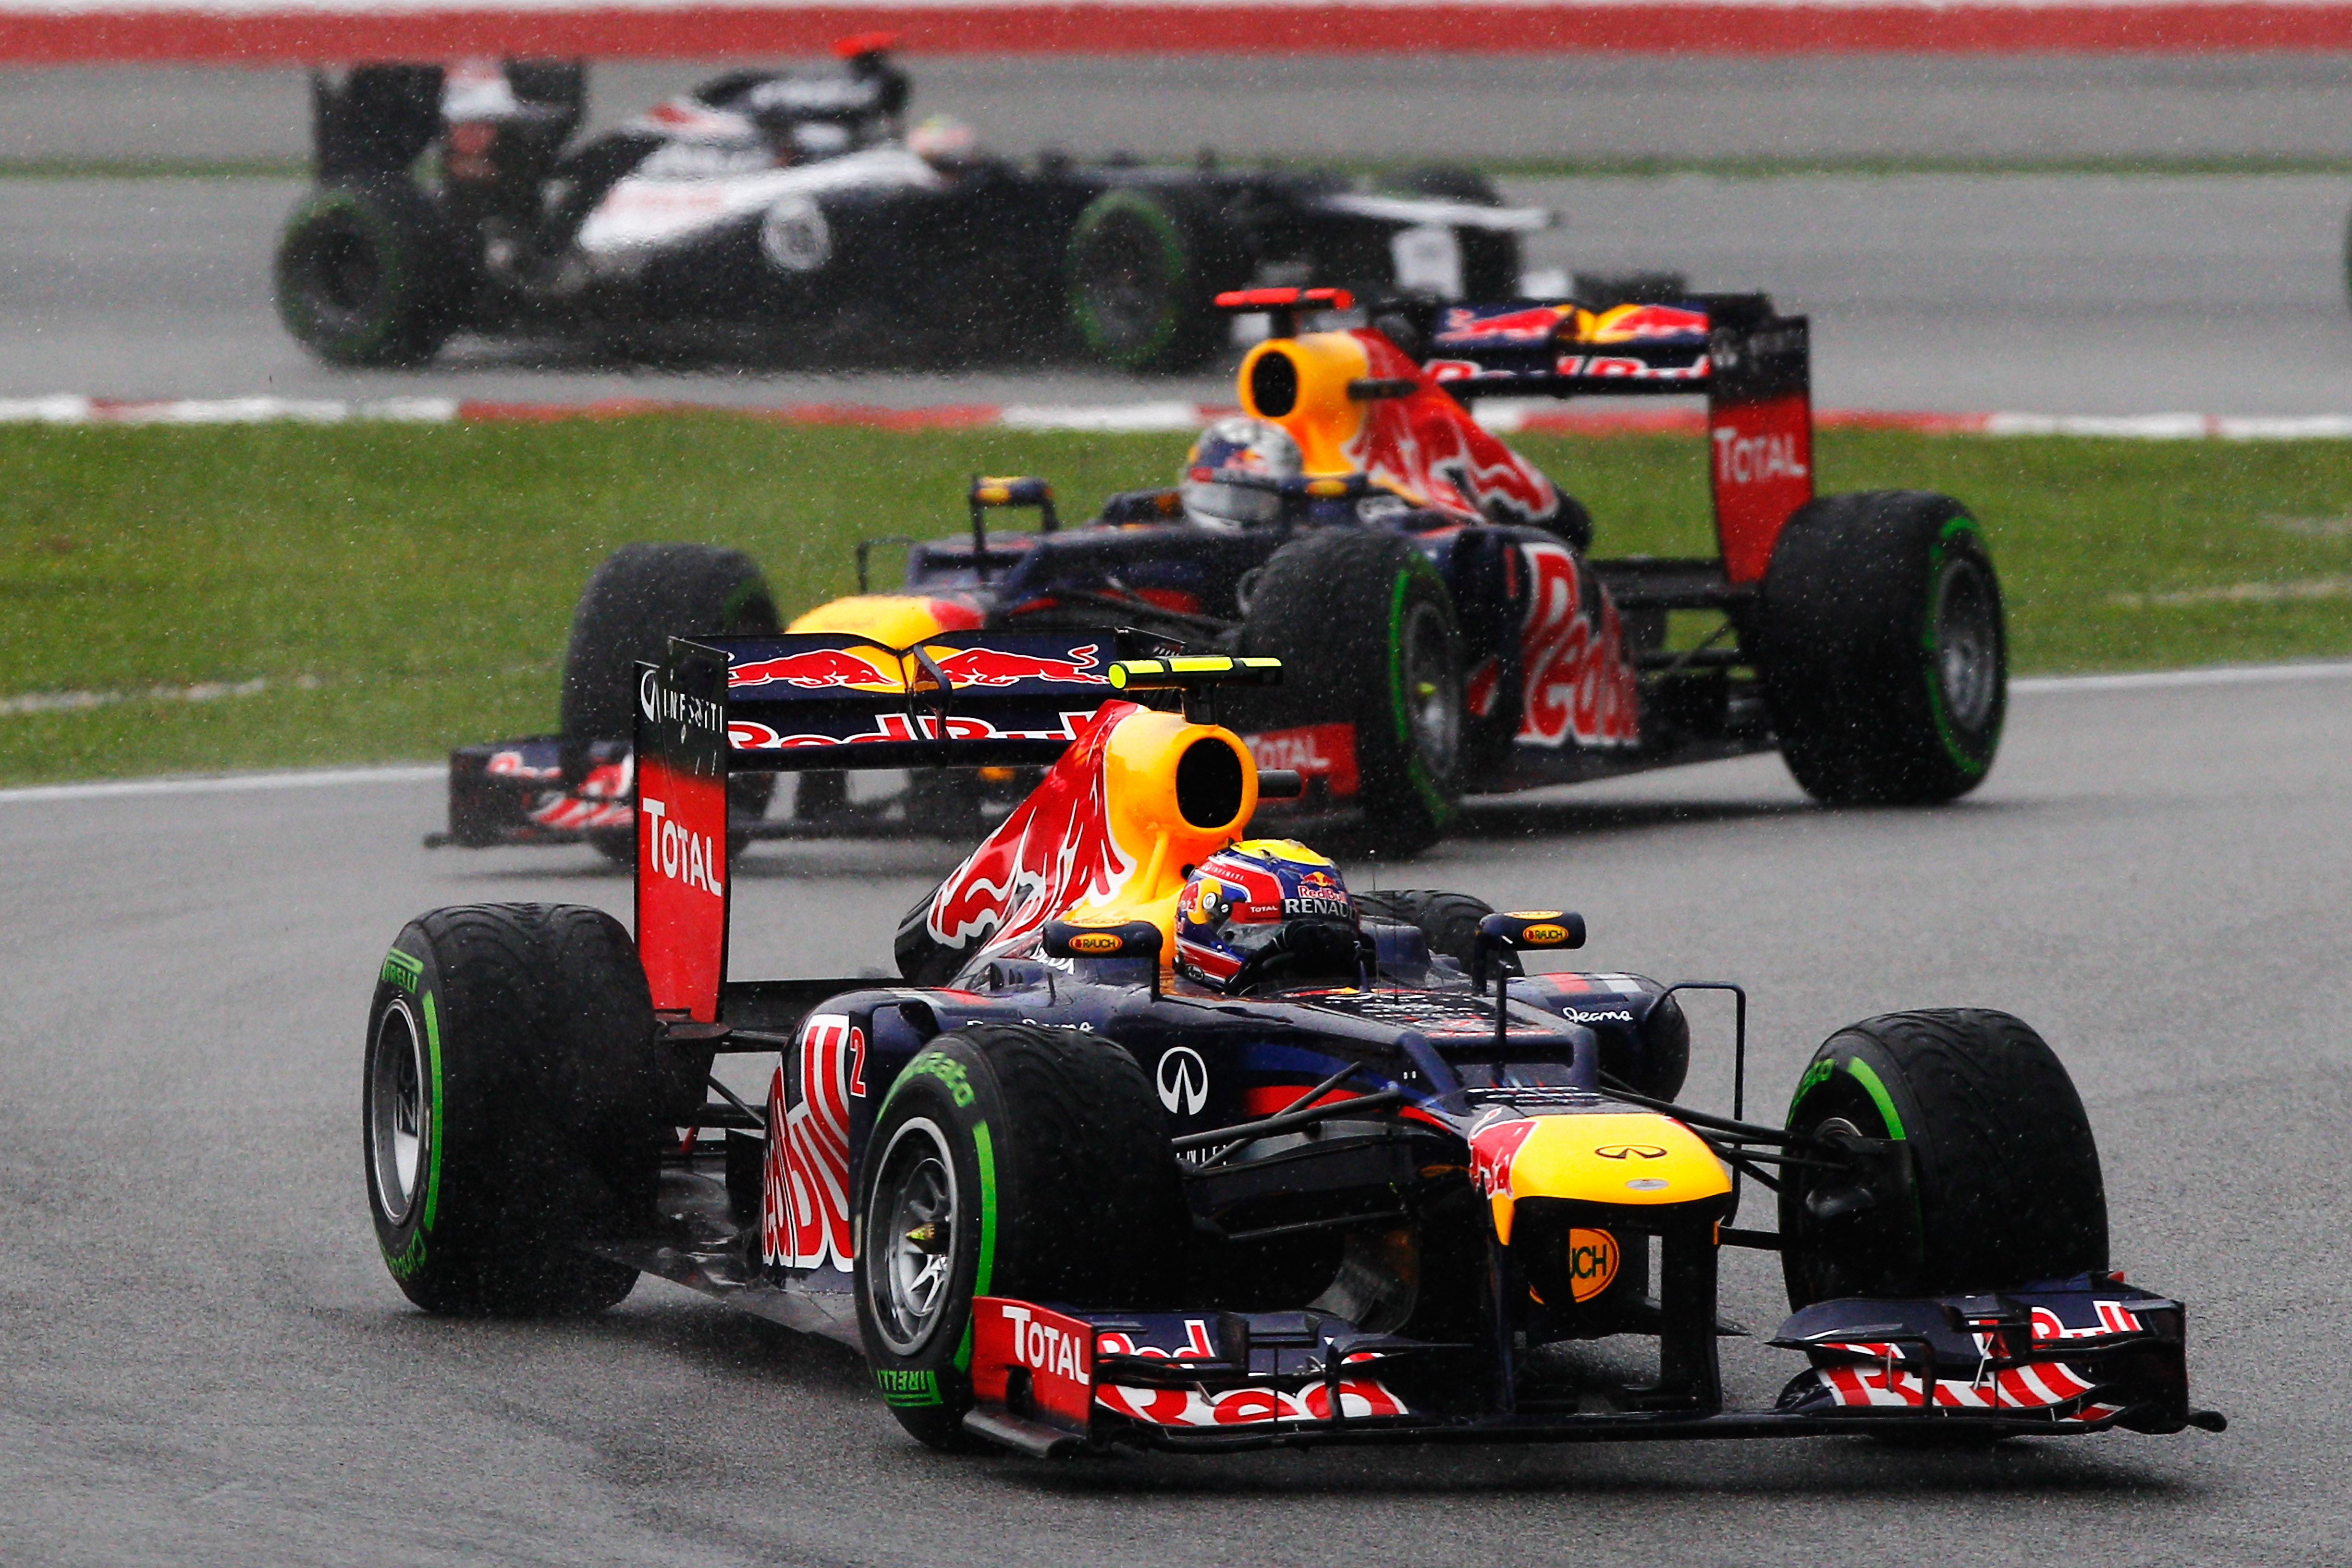 f1 2012 malaysian grand prix results red bull racing motor sport press. Black Bedroom Furniture Sets. Home Design Ideas